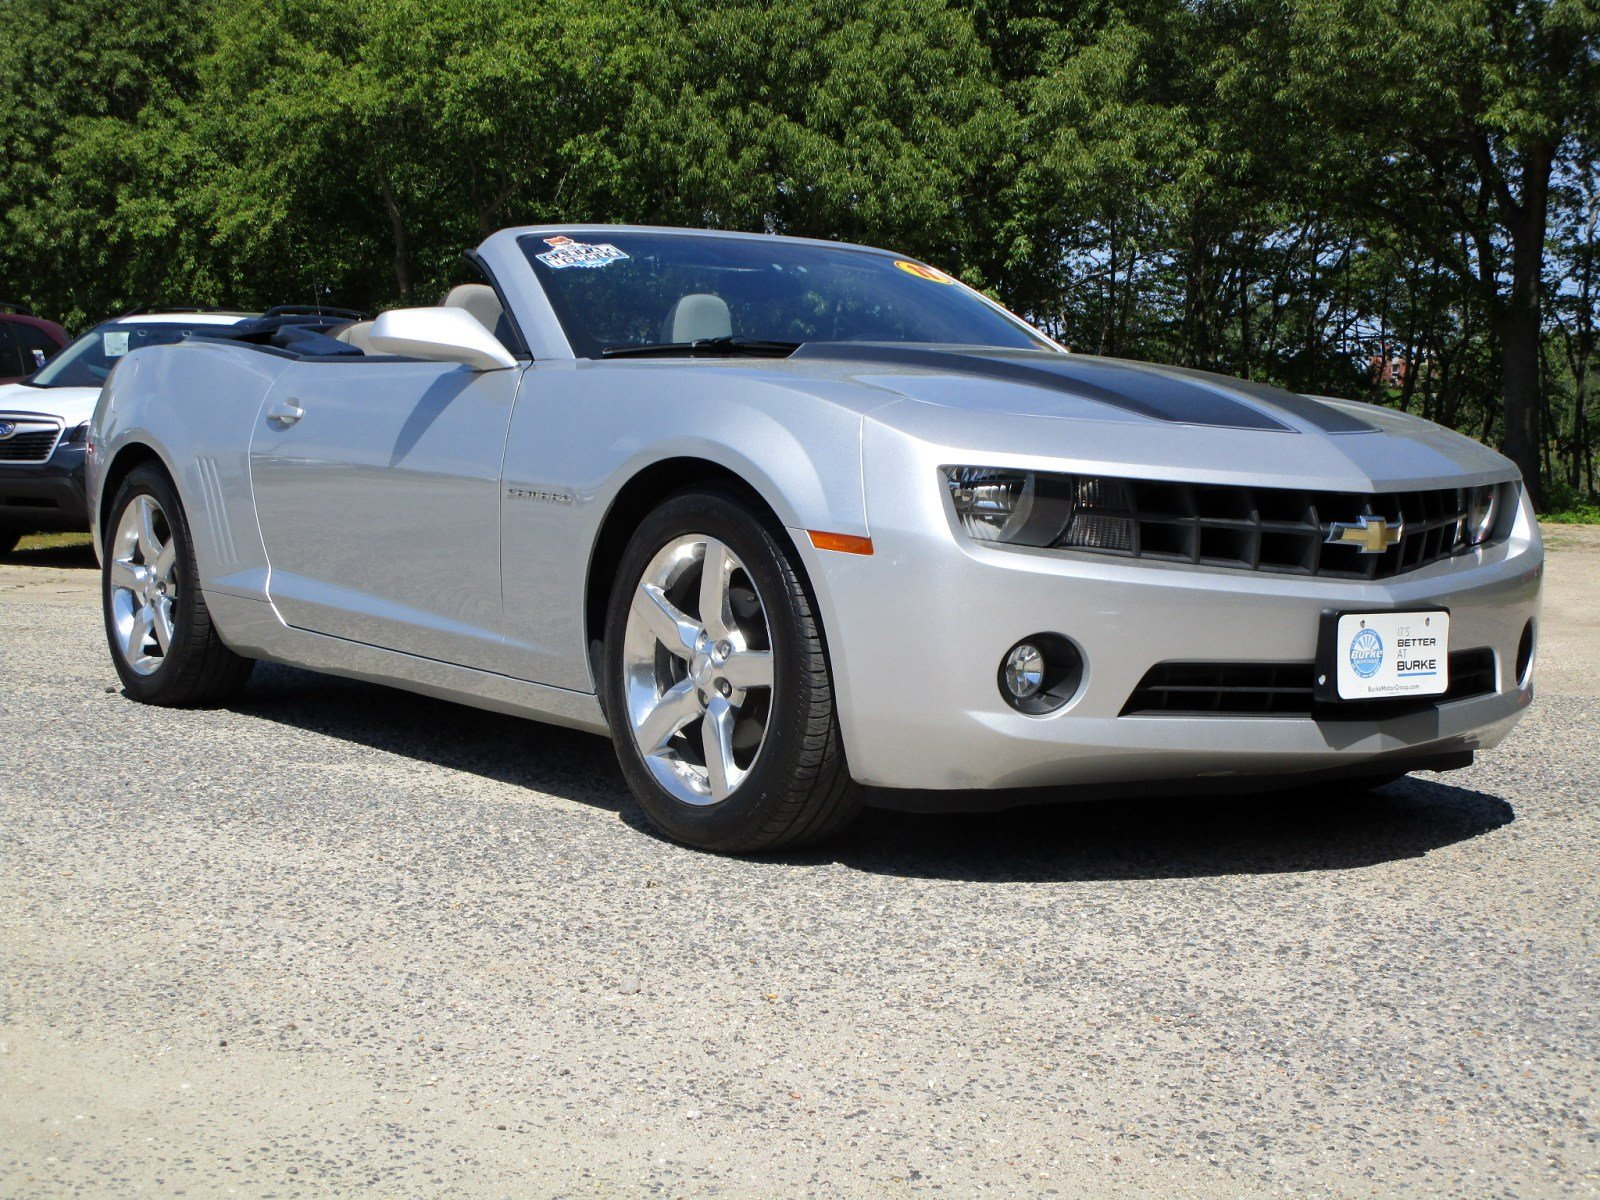 2011 Camaro For Sale >> Used 2011 Chevrolet Camaro 1lt For Sale In Cape May County Nj